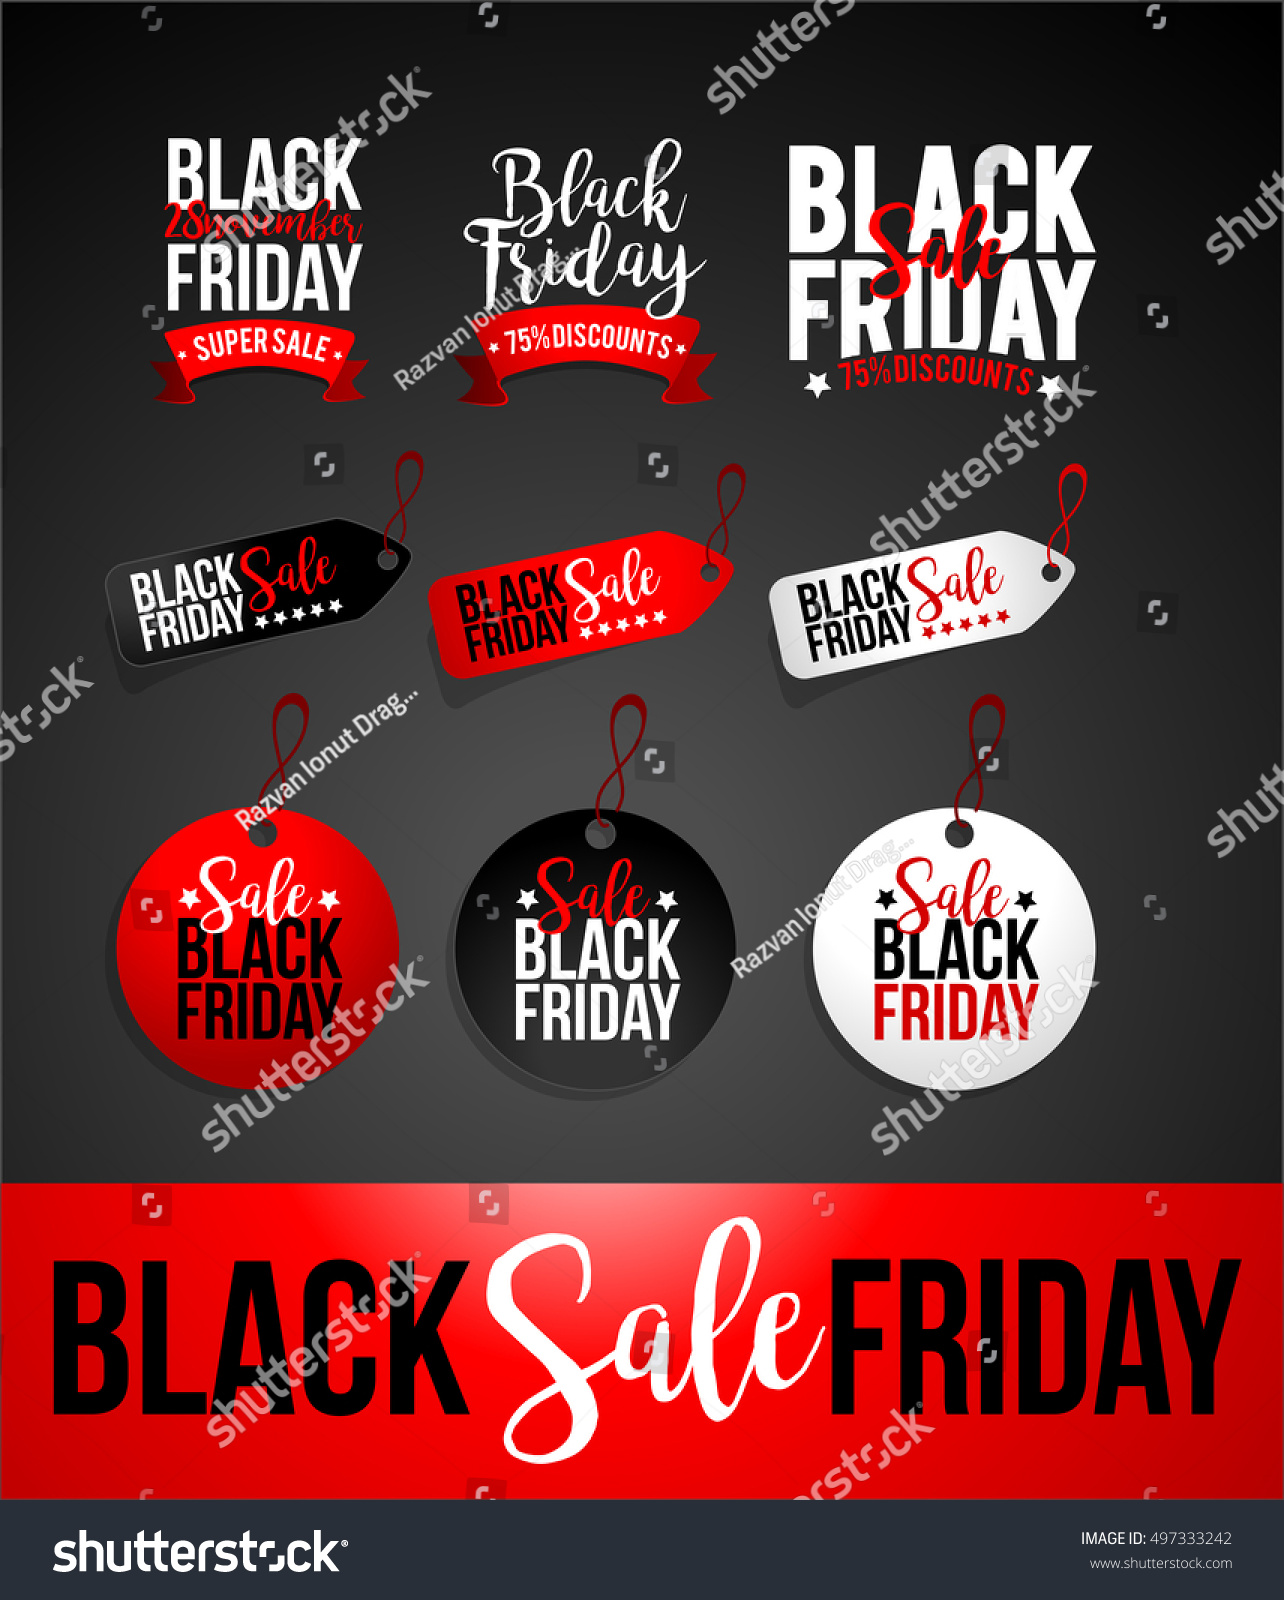 Black Friday Sale Creative Black Friday Sale Discount Banner Stok Vektör Telifsiz